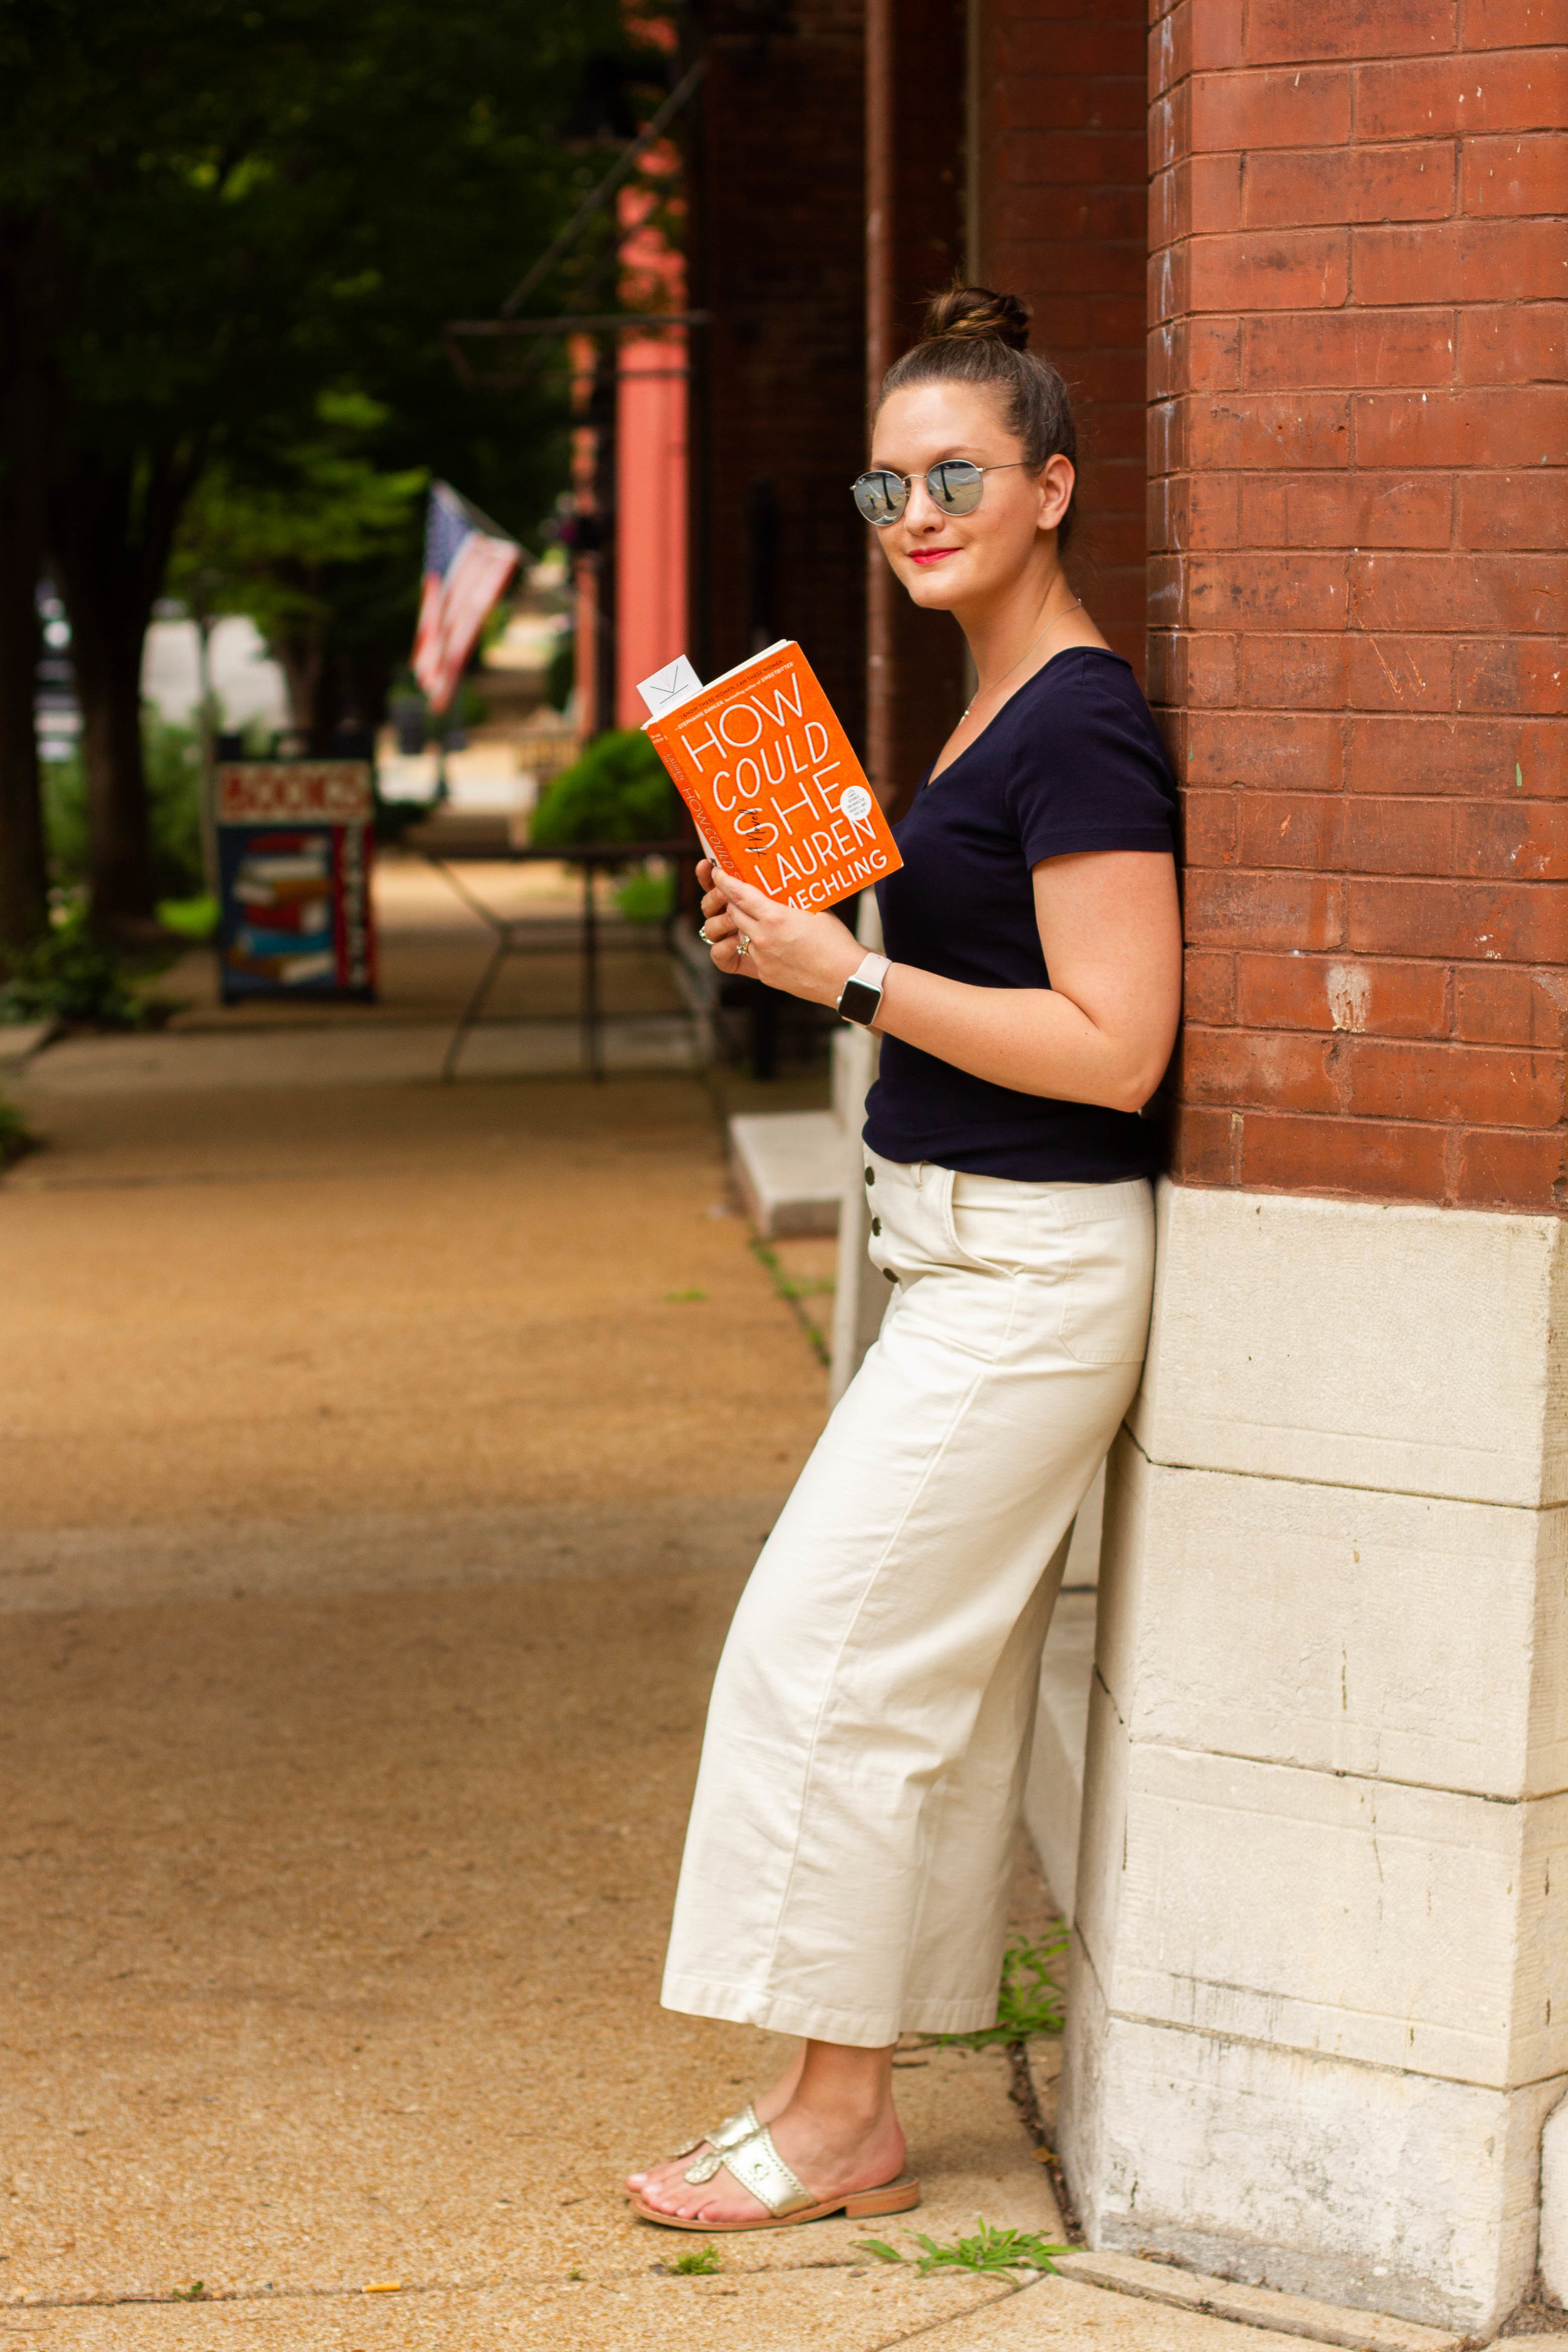 Reading How Could She by Lauren Mechling on Cherokee Street in St. Louis, MO